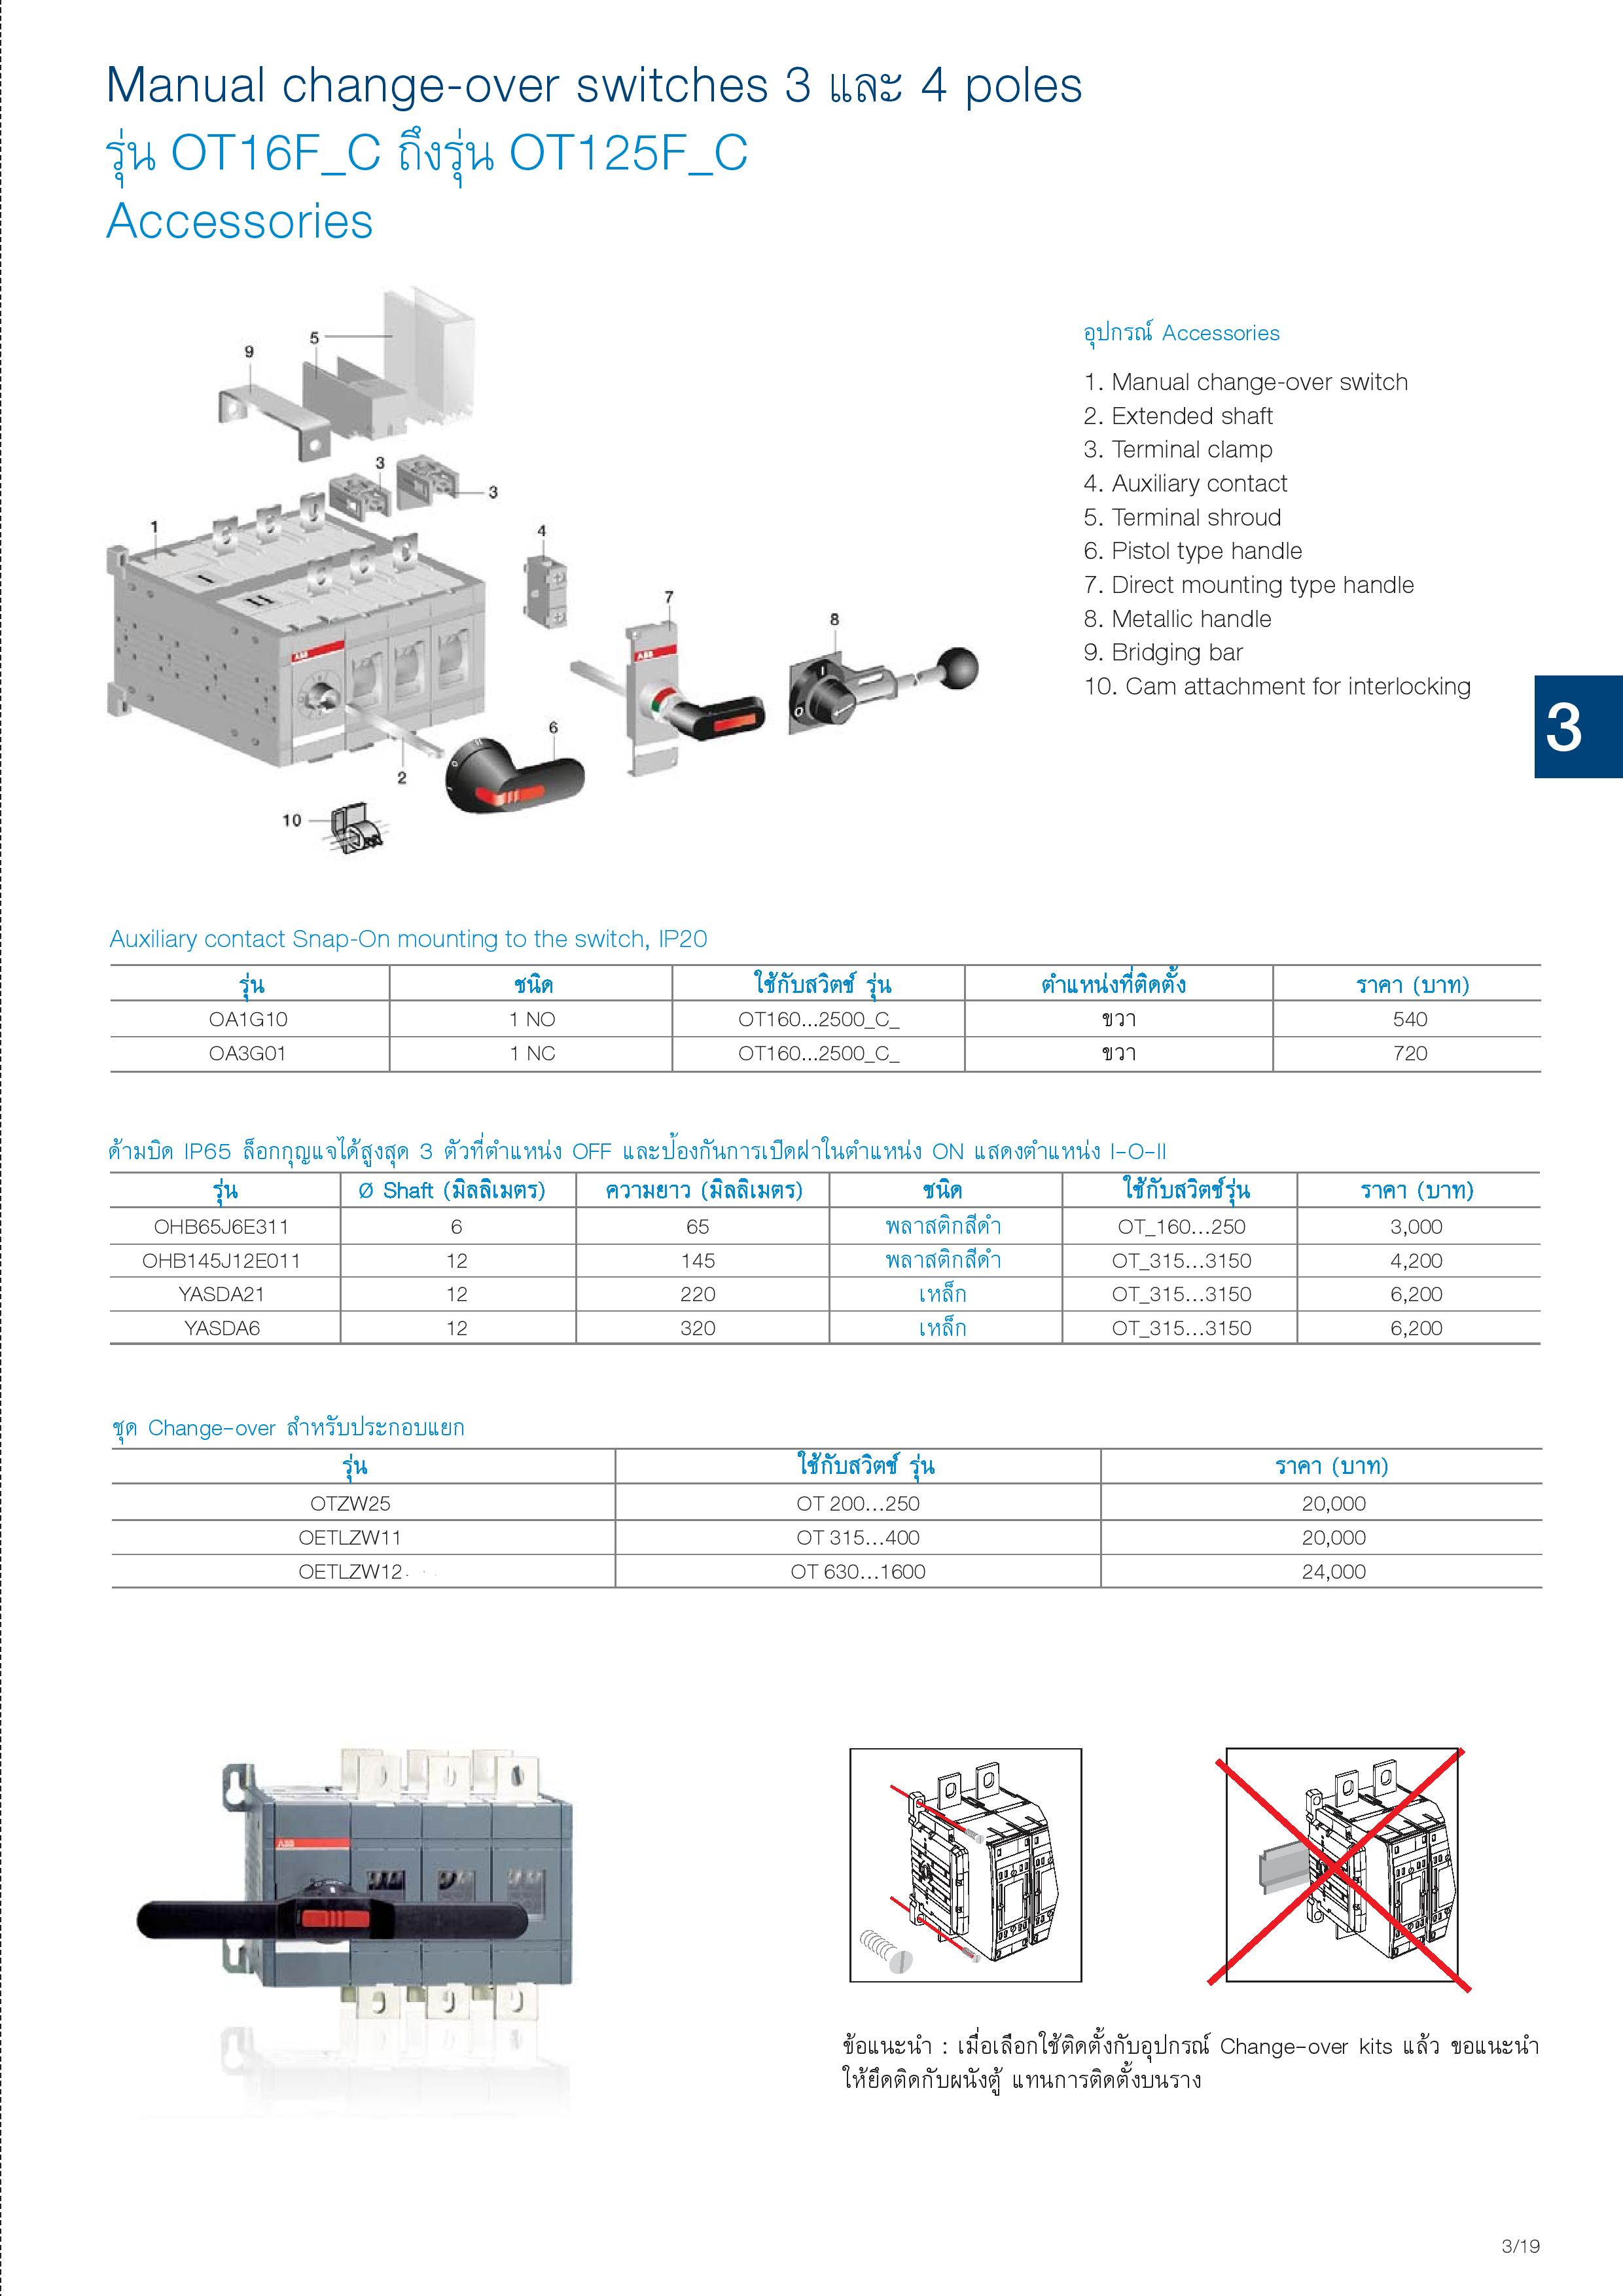 Abb Manual Change Over Switches 3 Phase Switch Wiring Diagram Low Voltage Products Thailand Price List 20141 Page 069 Tags Pole 4